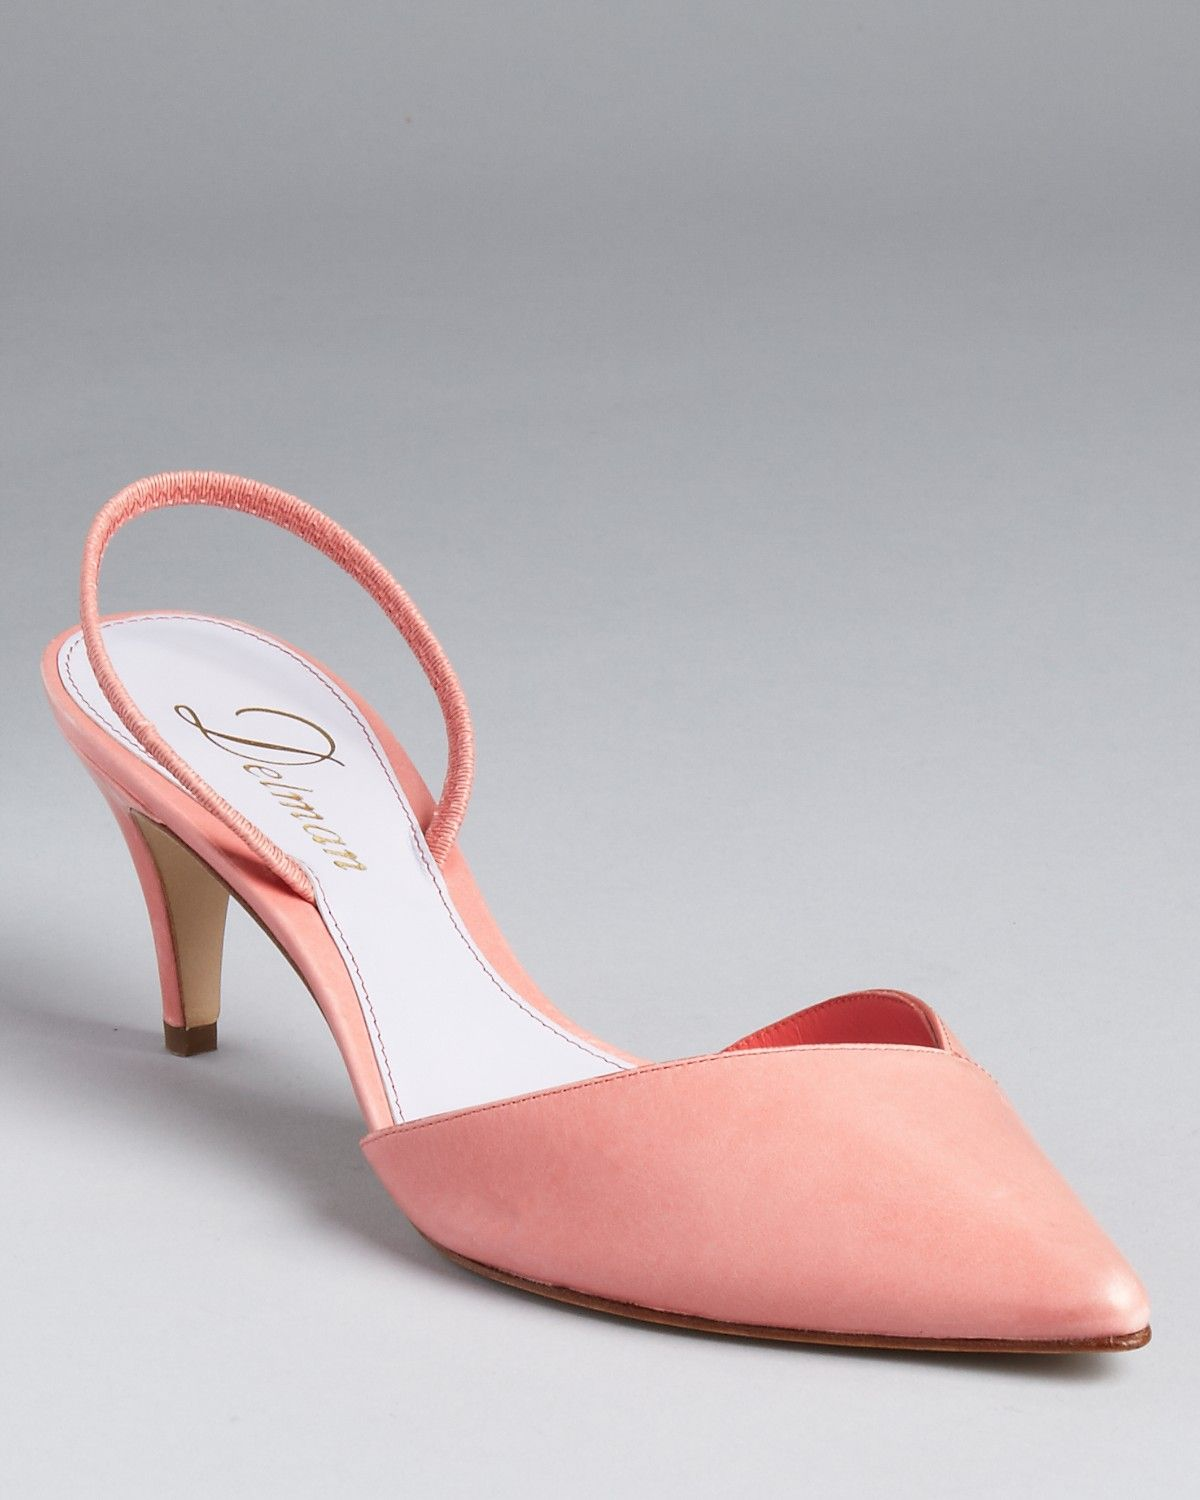 8504daf6295 Delman Pumps- Laci Slingback....oh, how these make me smile ...